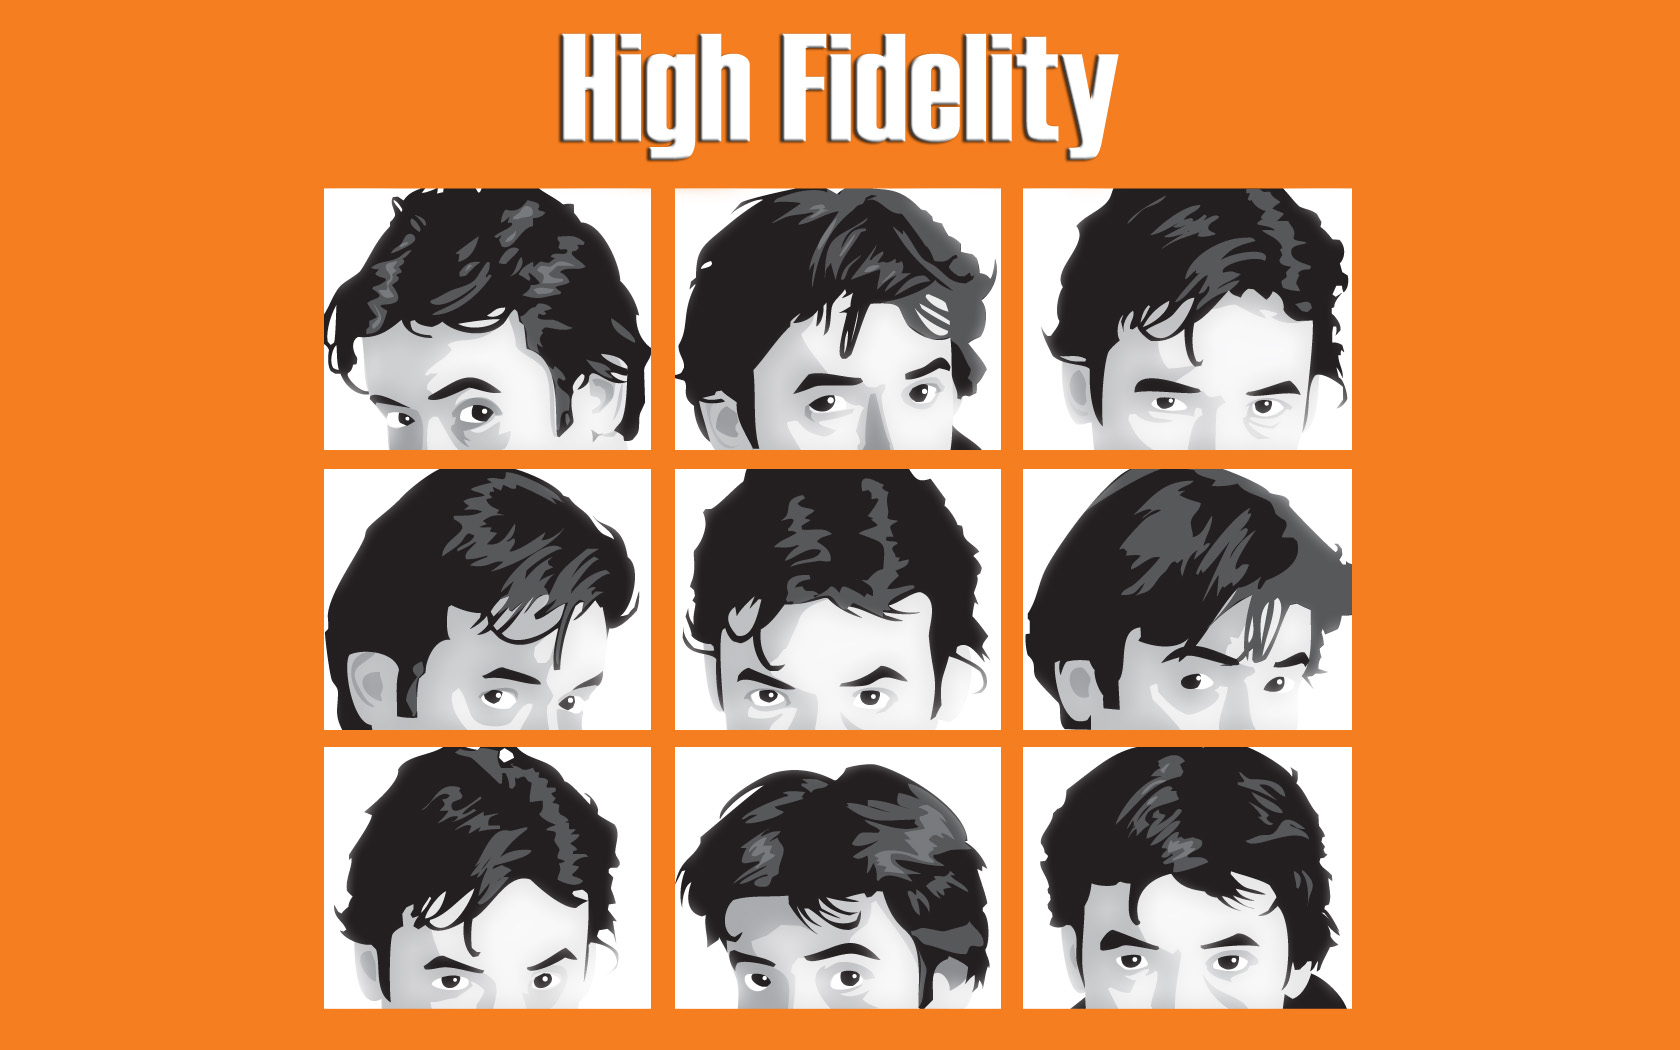 Tickets For High Fidelity In Dormont From Showclix